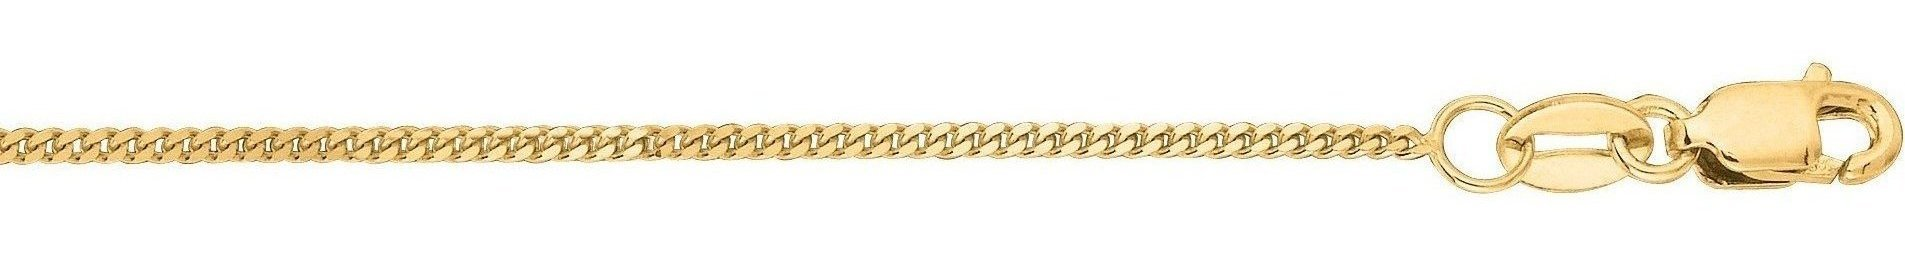 "16"" 10K Yellow Gold 1.0mm (0.04"") Polished Diamond Cut Gourmette Chain w/ Lobster Clasp"